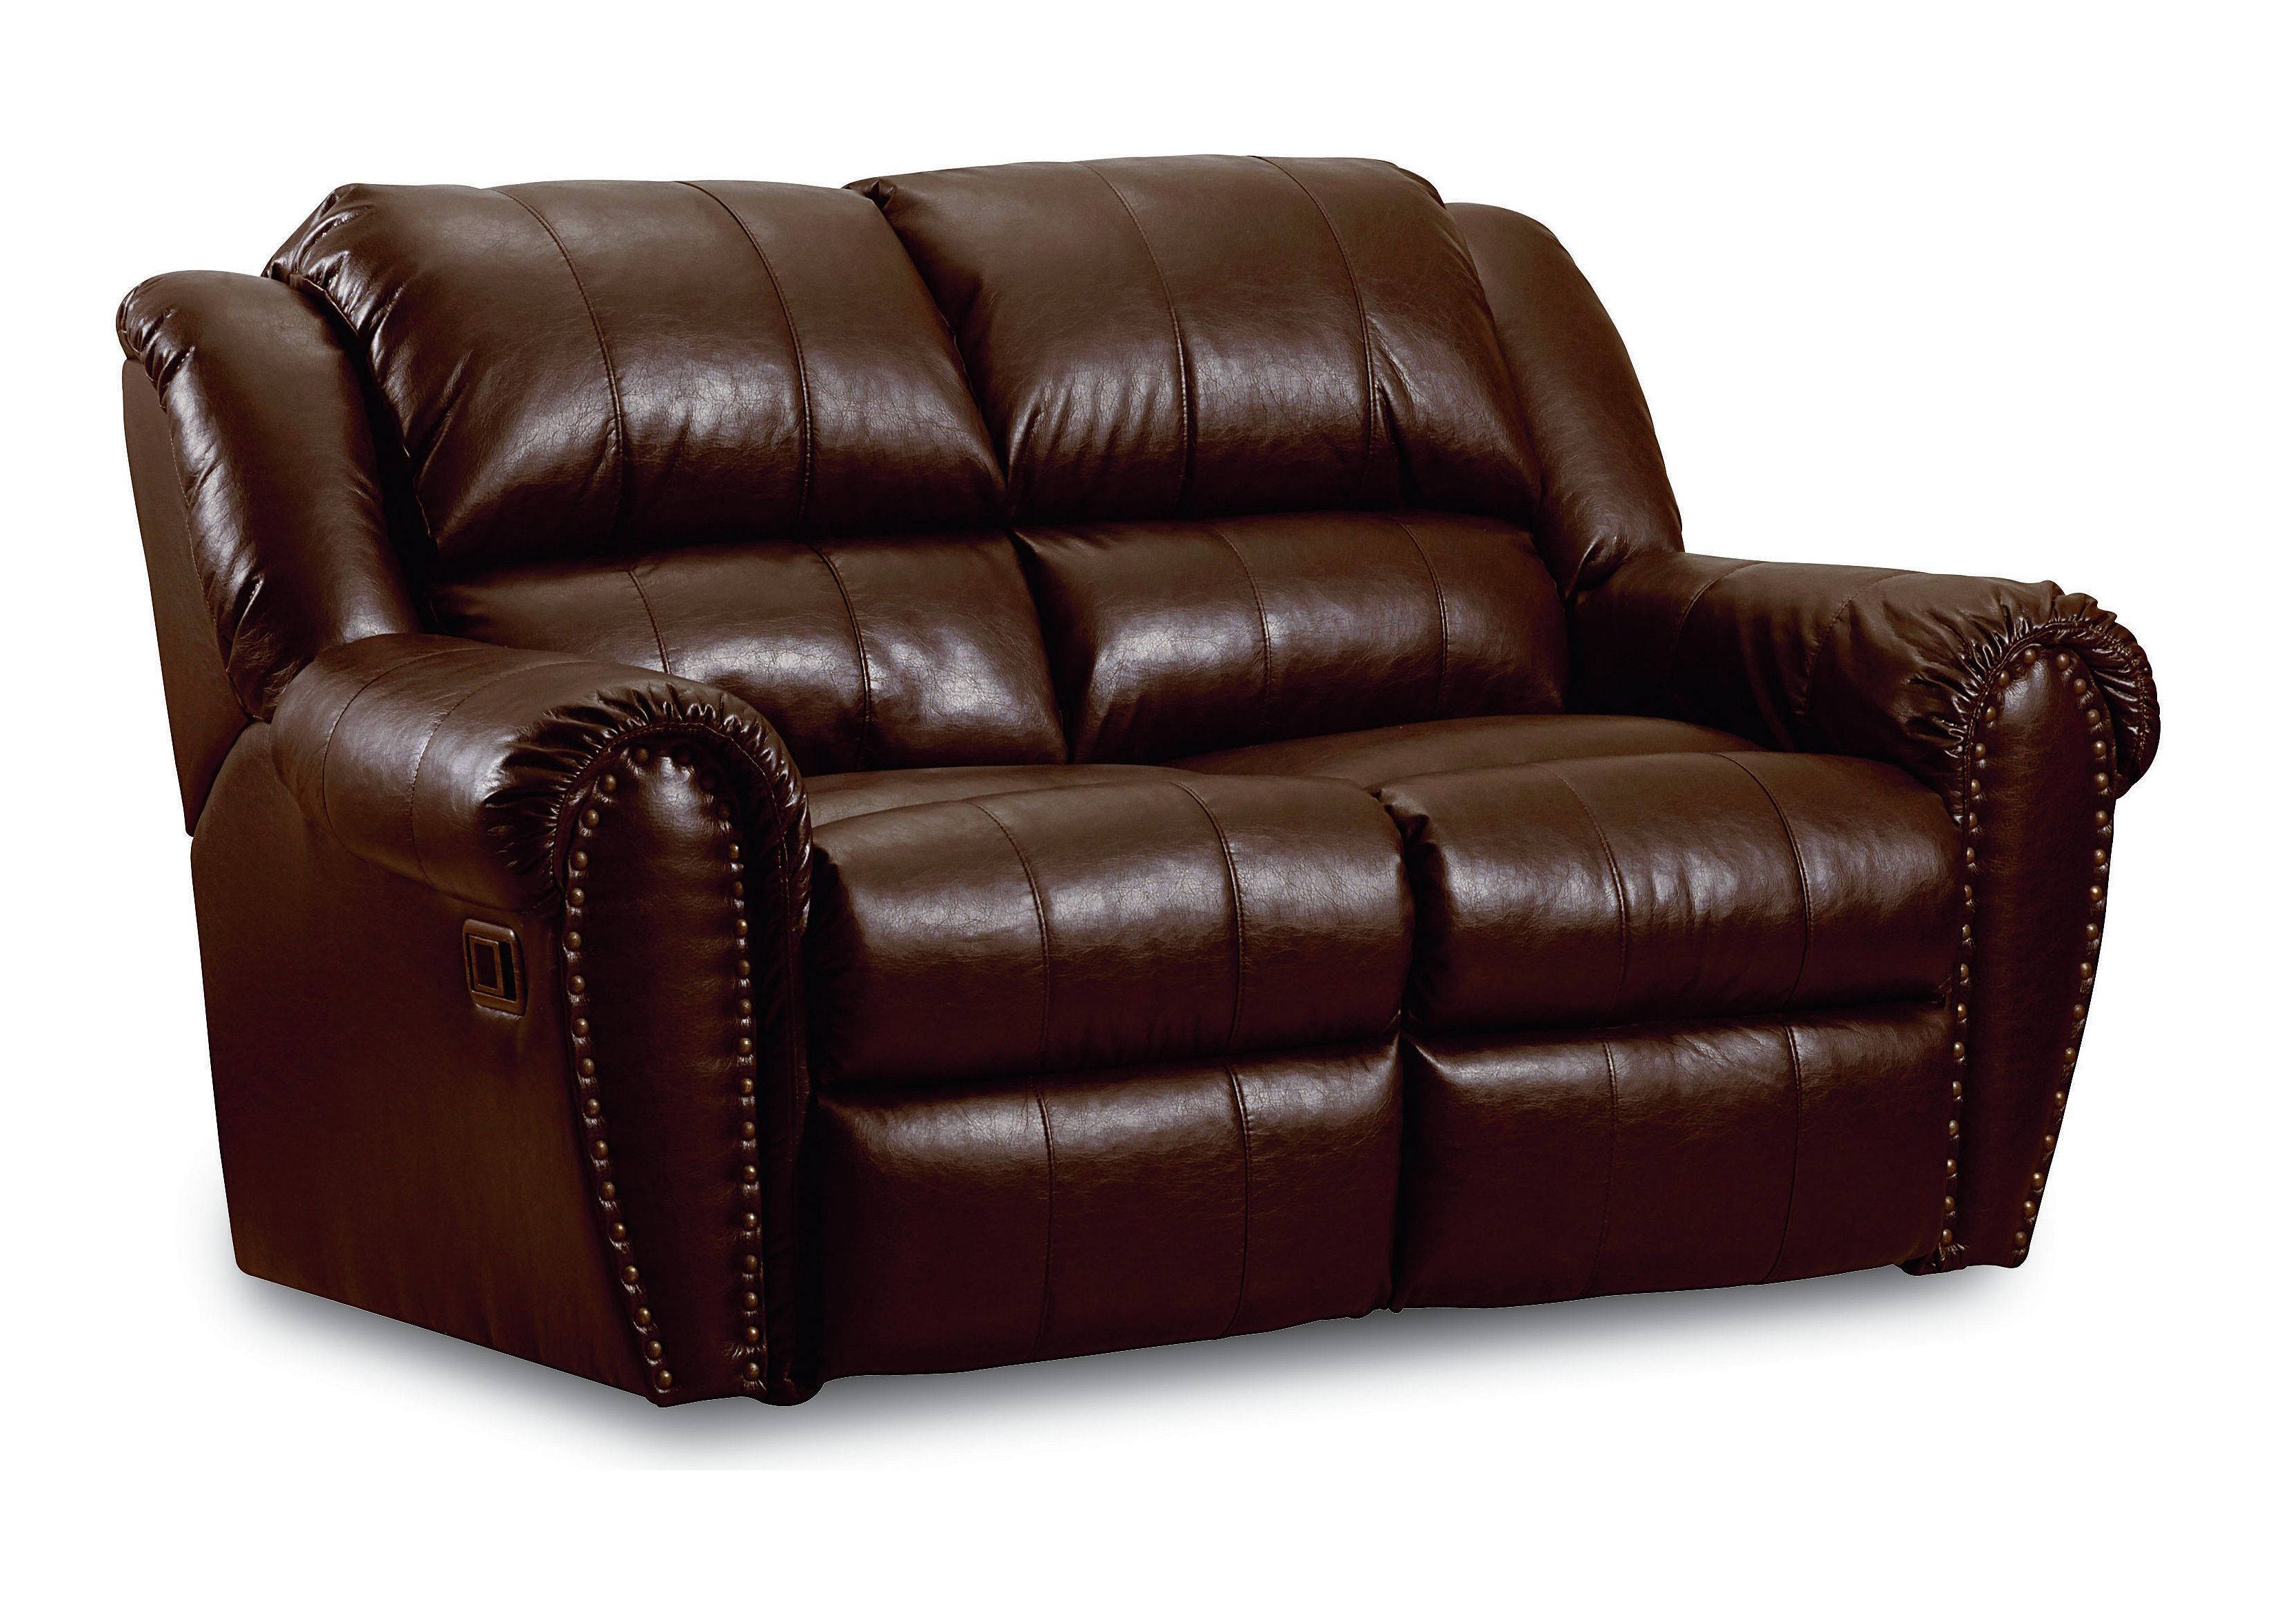 Summerlin Traditional Brown Leather Living Room Set The Classy Home